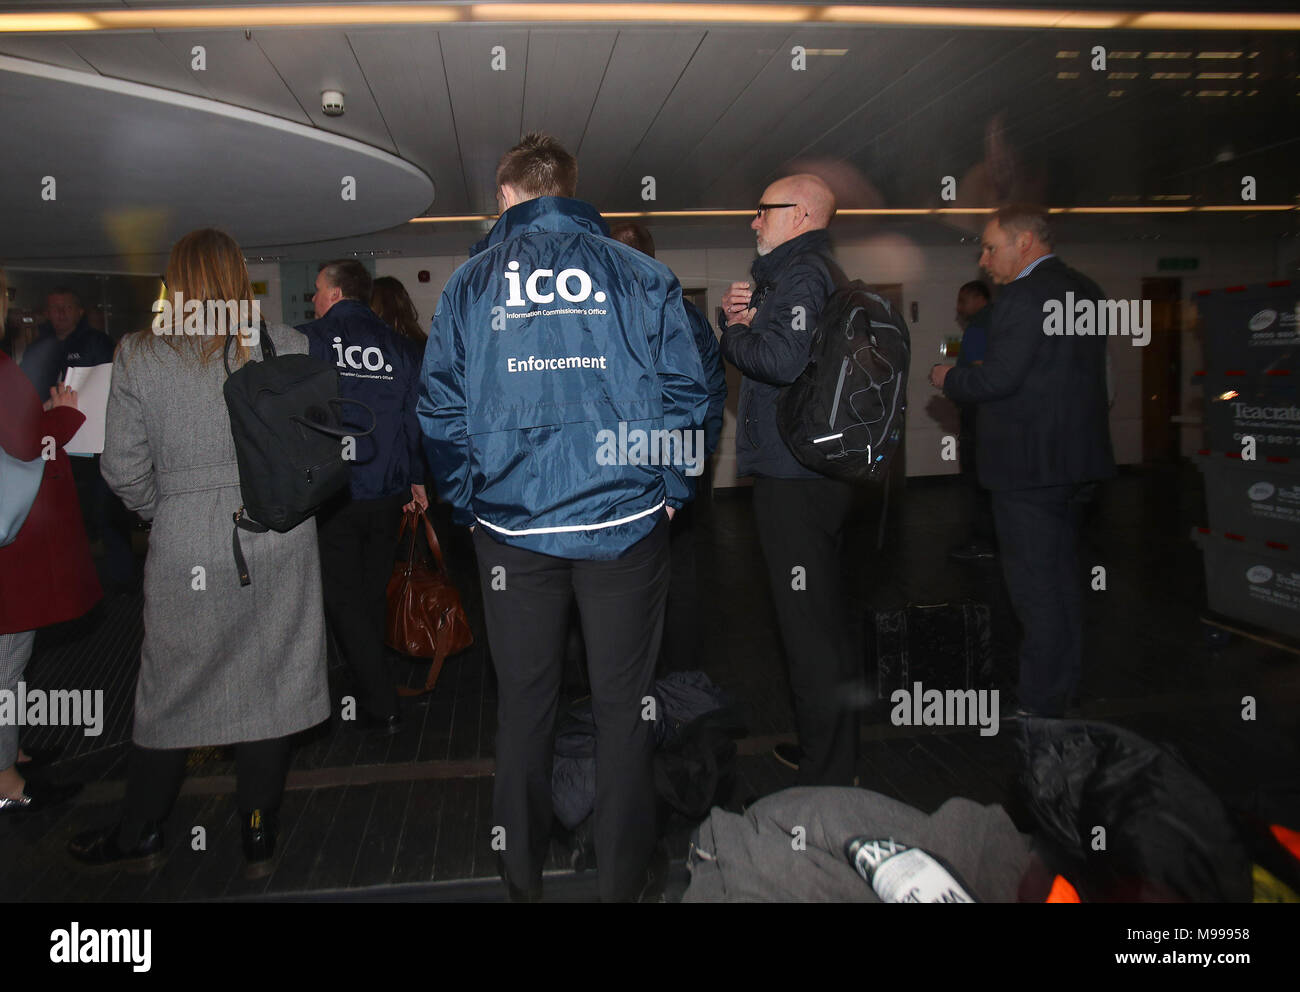 Enforcement officers working for the Information Commissioner's Office entering the premises of Cambridge Analytica in central London after a High Court judge granted a search warrant. - Stock Image